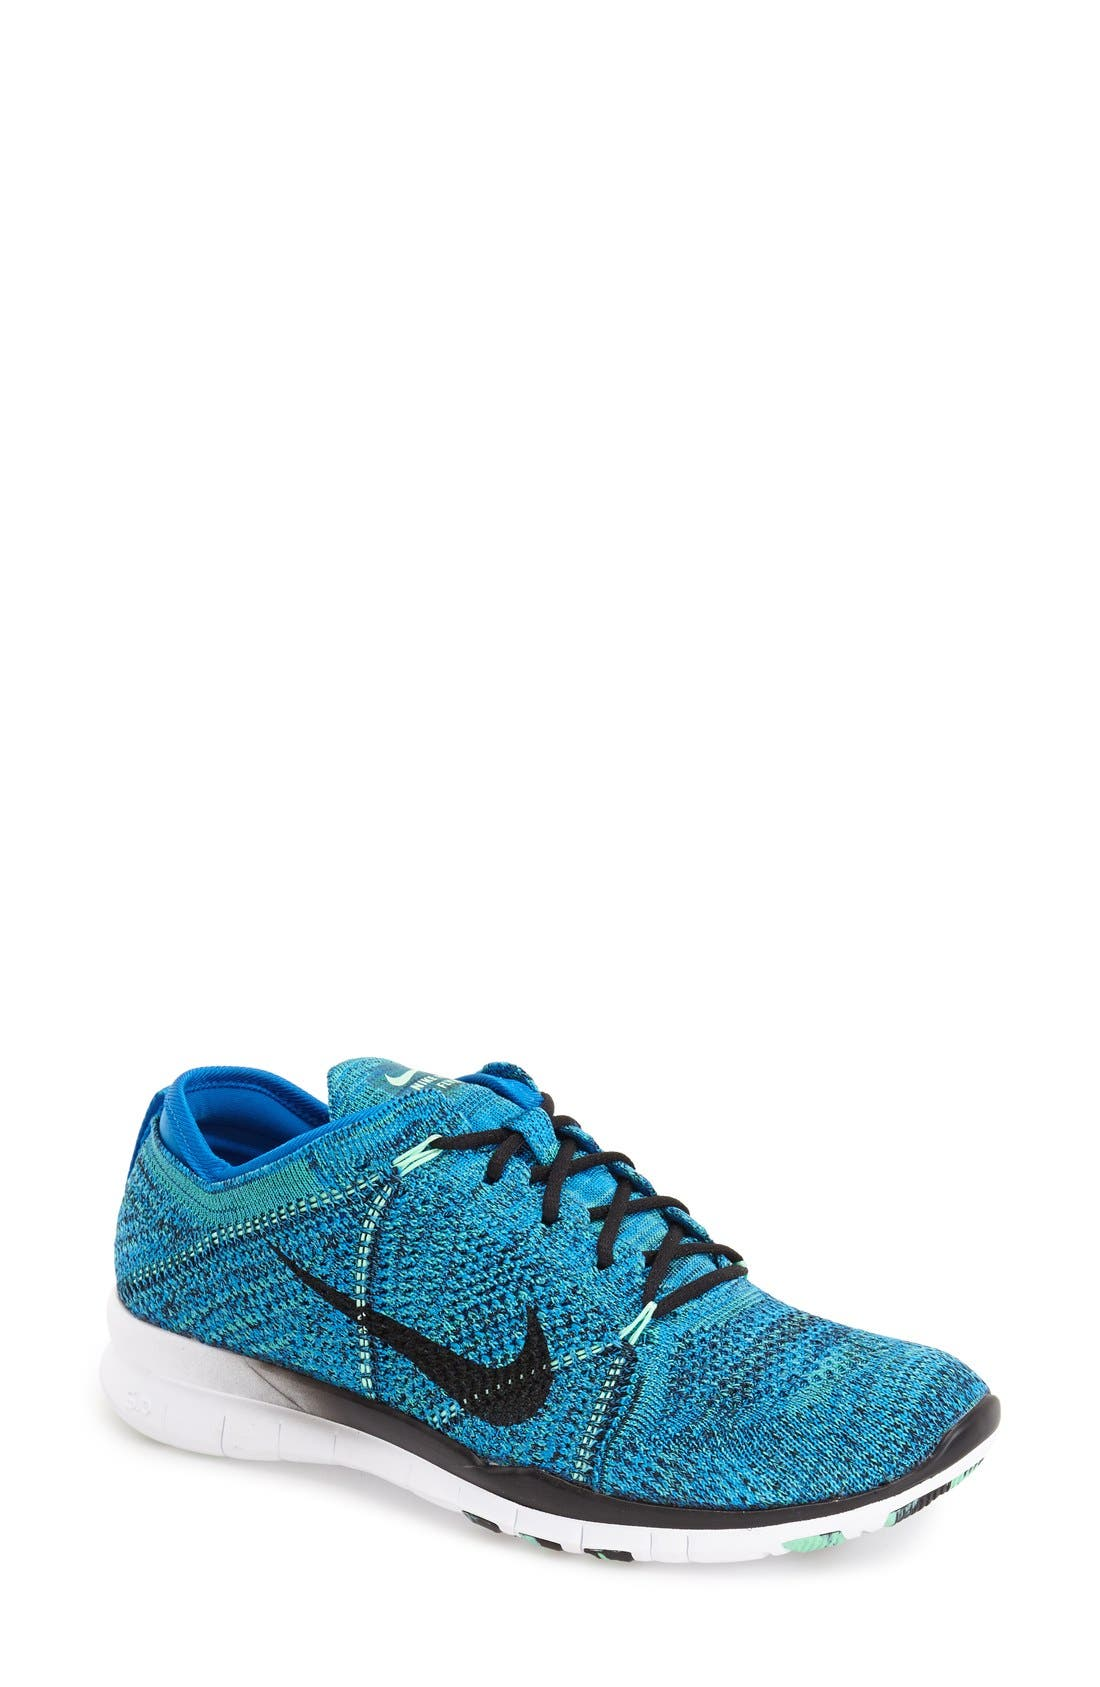 'Free Flyknit 5.0 TR' Training Shoe,                             Main thumbnail 8, color,